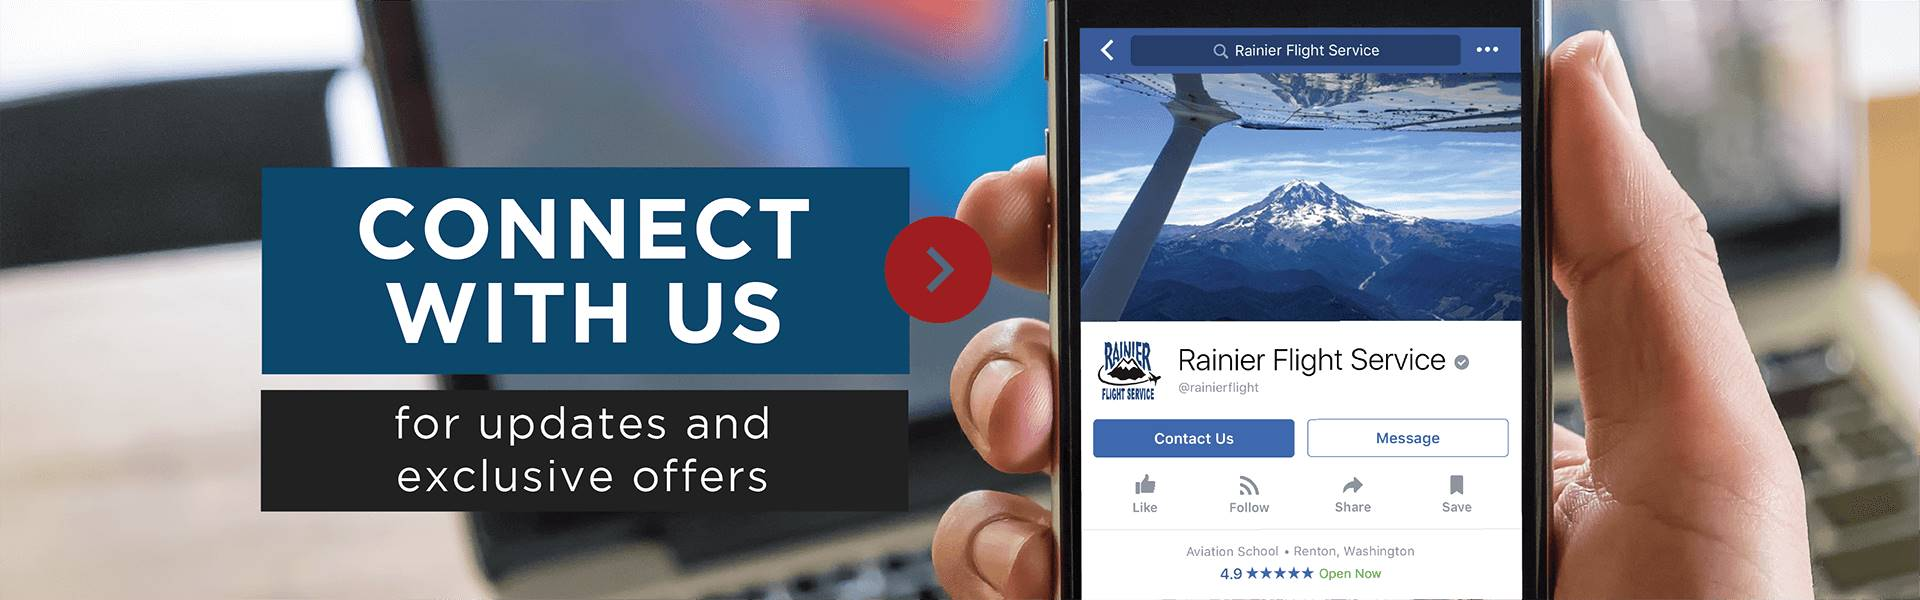 Rainier Flight Service Social Media